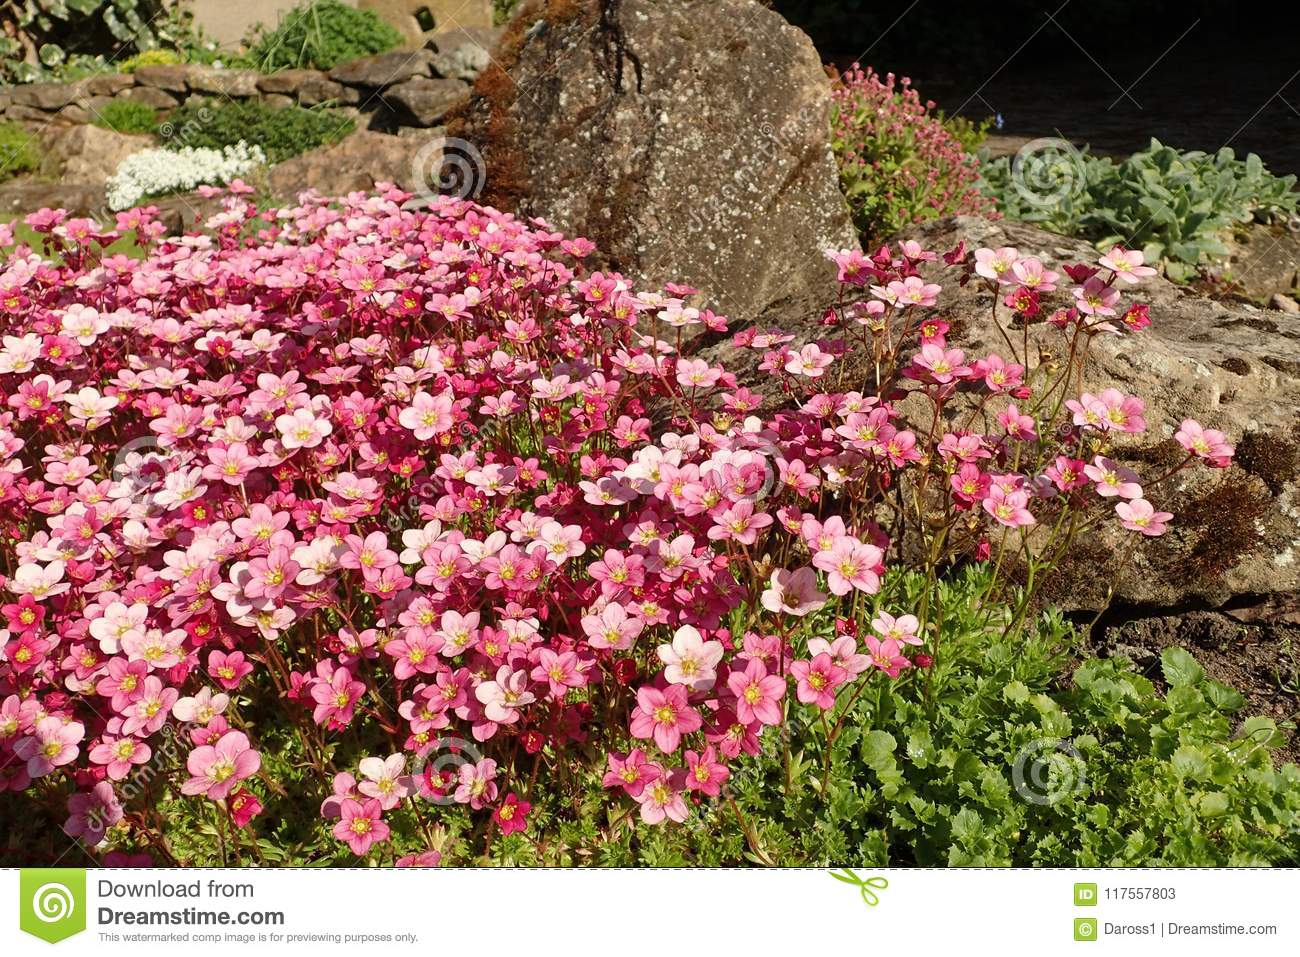 Saxifraga `Silver Cushion`, with flowers in full bloom in a rockery.